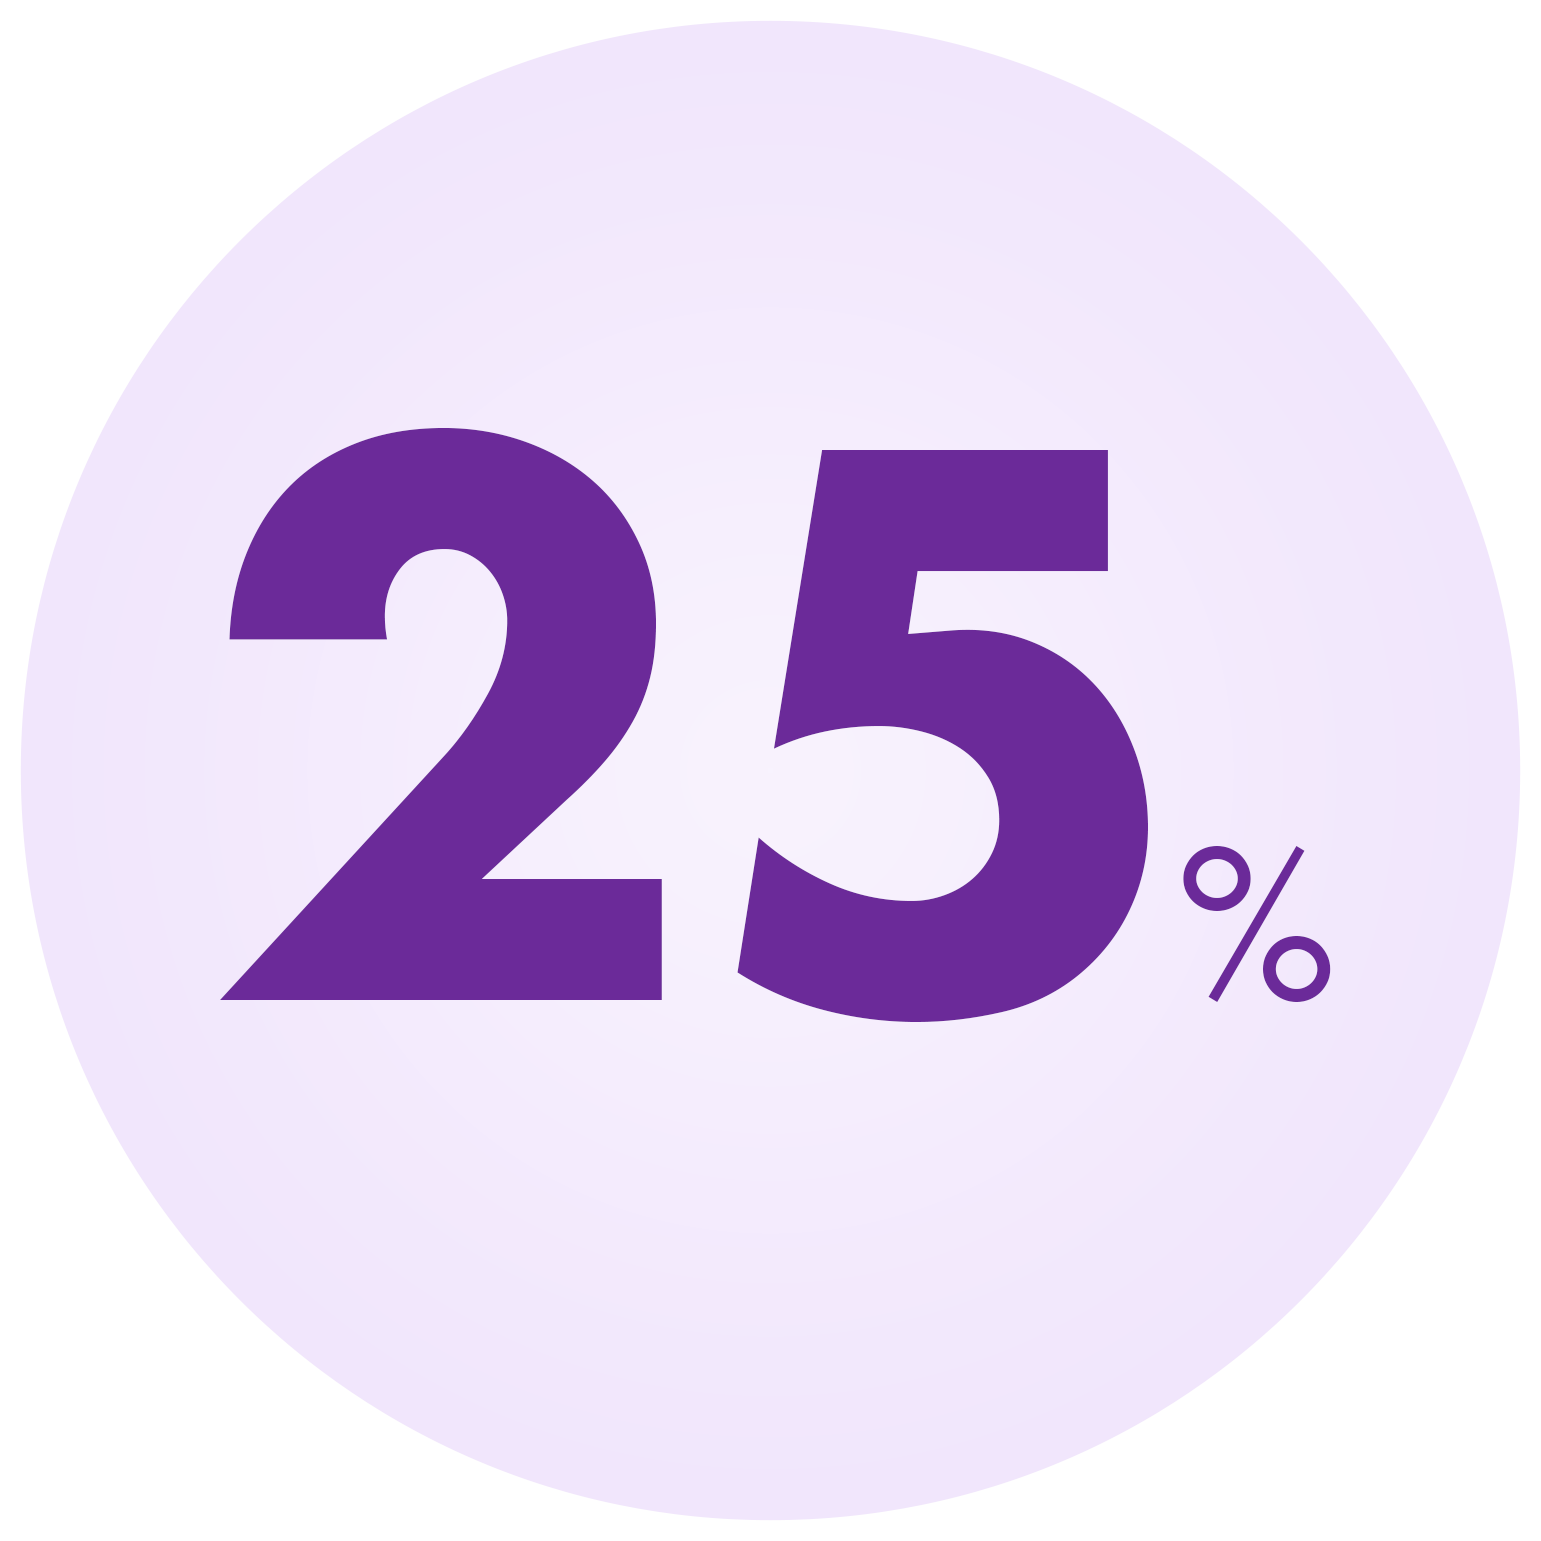 infographic_04_25percent.png